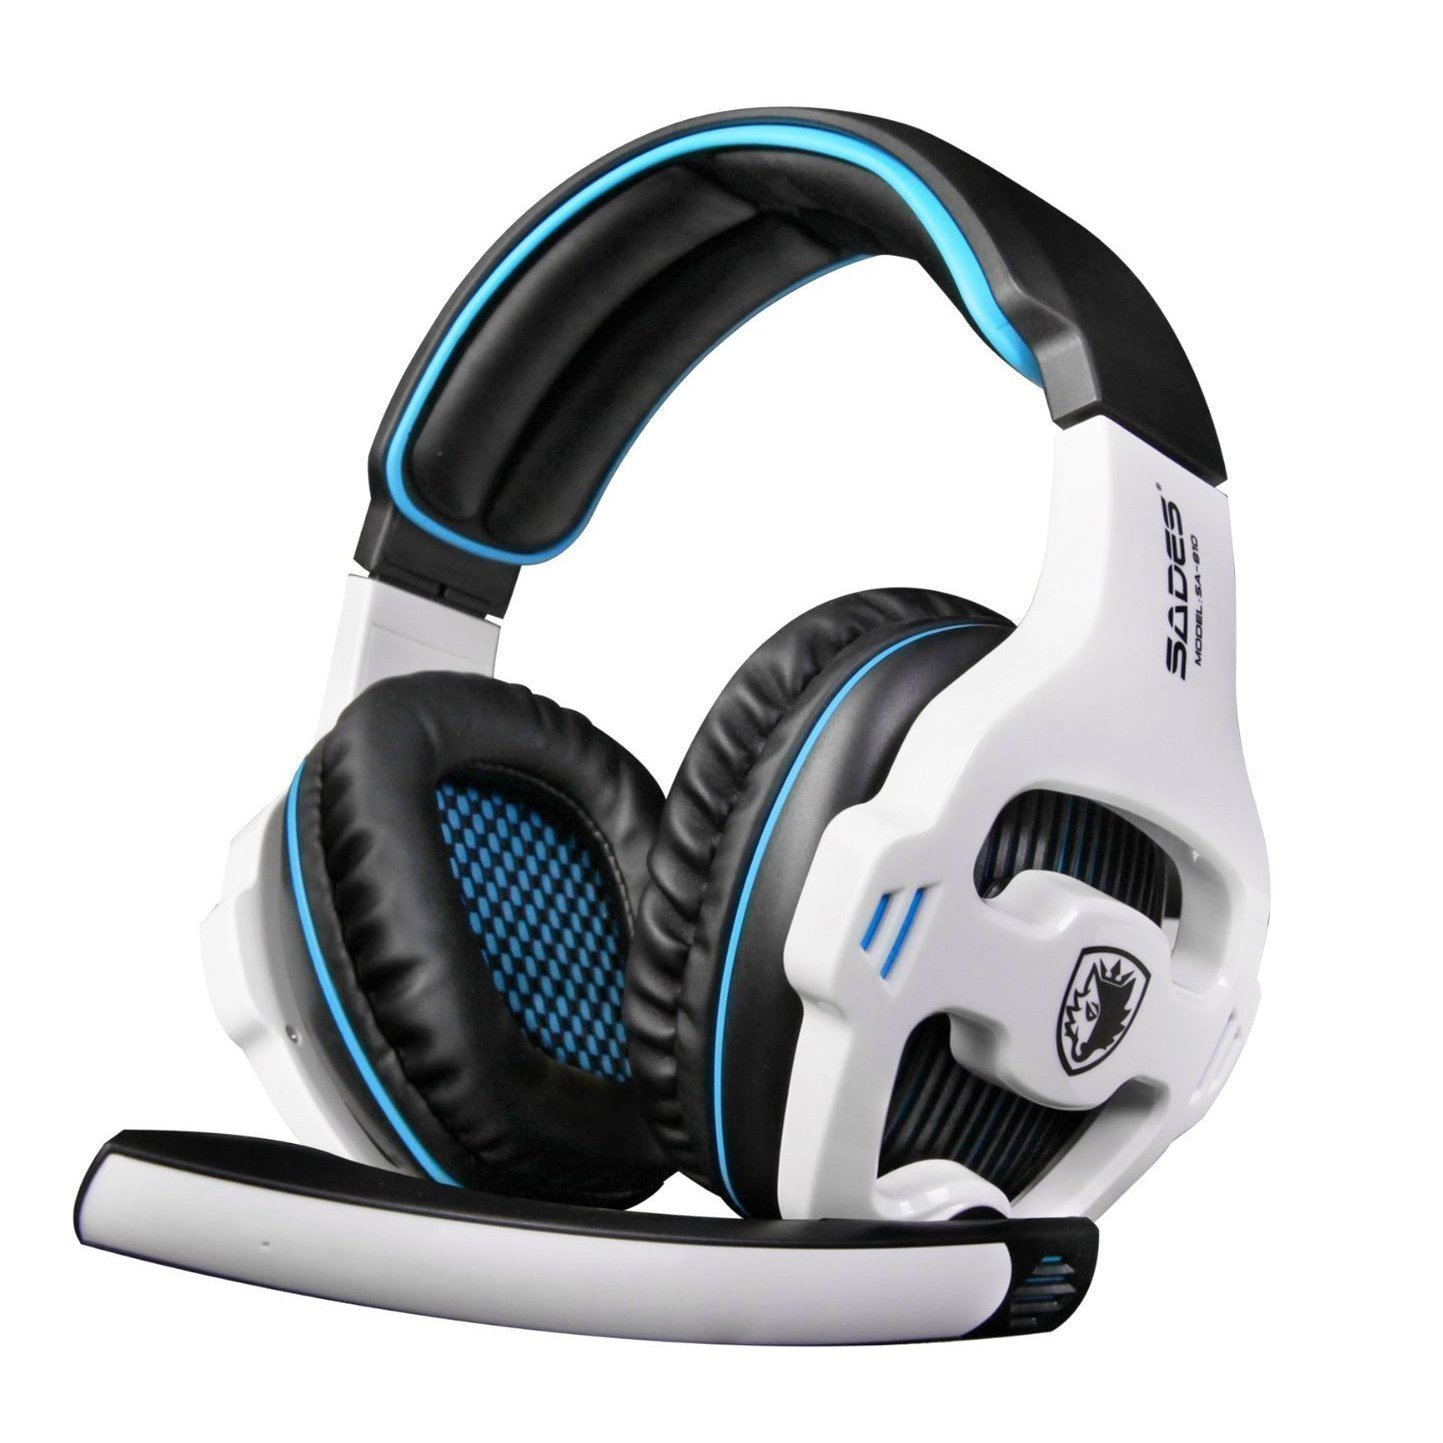 SADES SA810 3.5mm Wired Stereo PC Gaming Headset with Microphone for PC/Laptop(Black White)